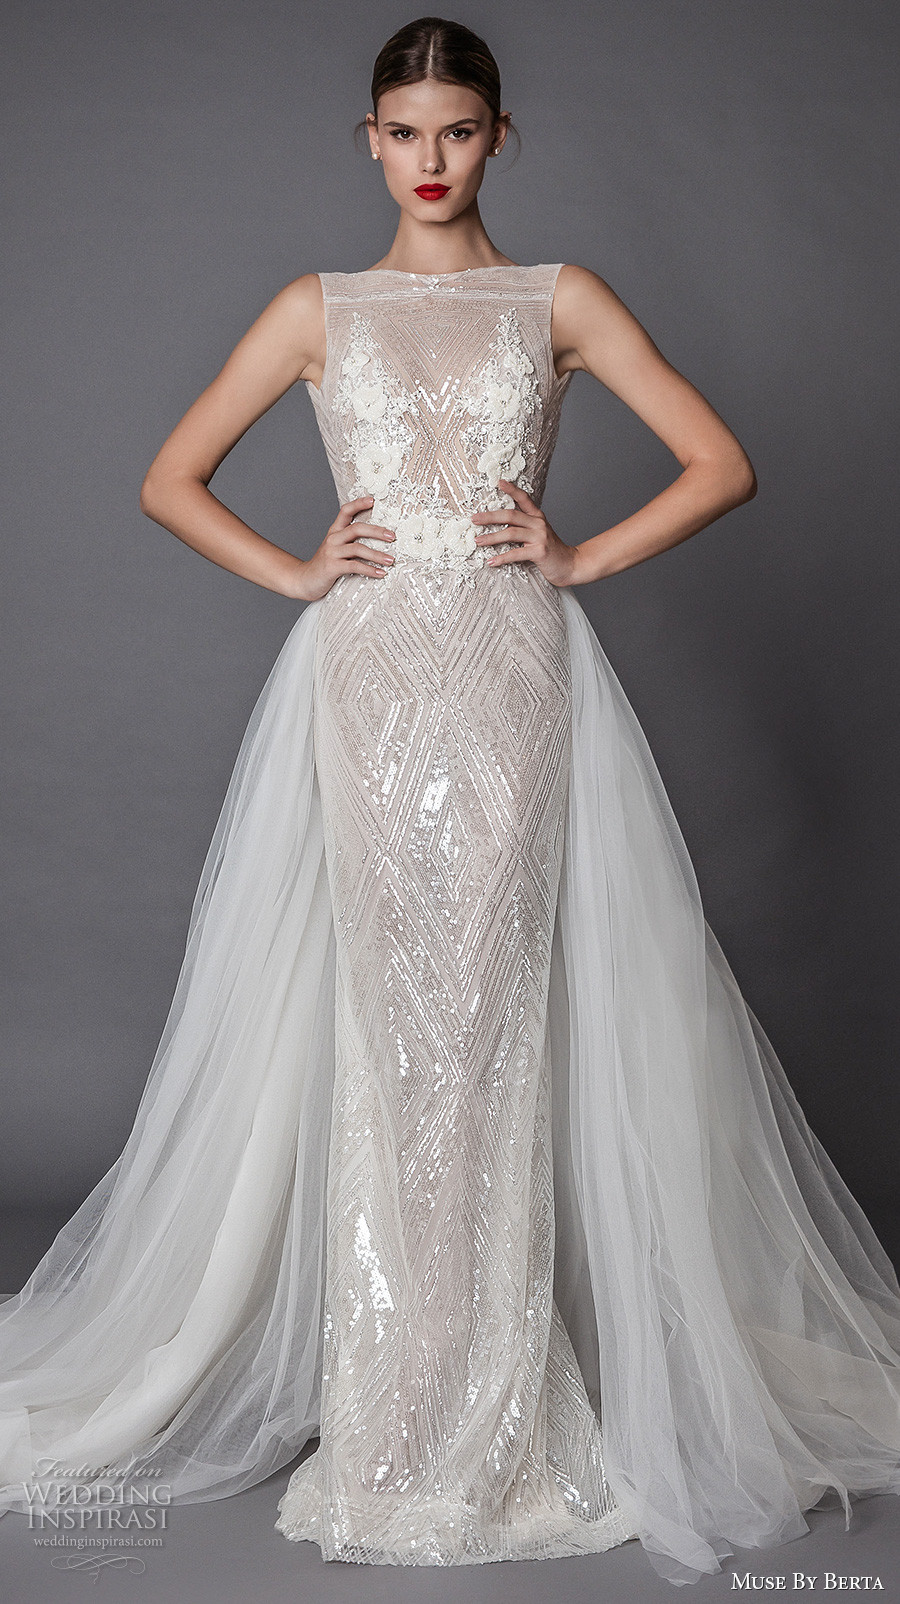 New Muse by Berta Fall 2017 Wedding Dresses Bridal Dress Patterns Of Delightful 43 Pictures Bridal Dress Patterns